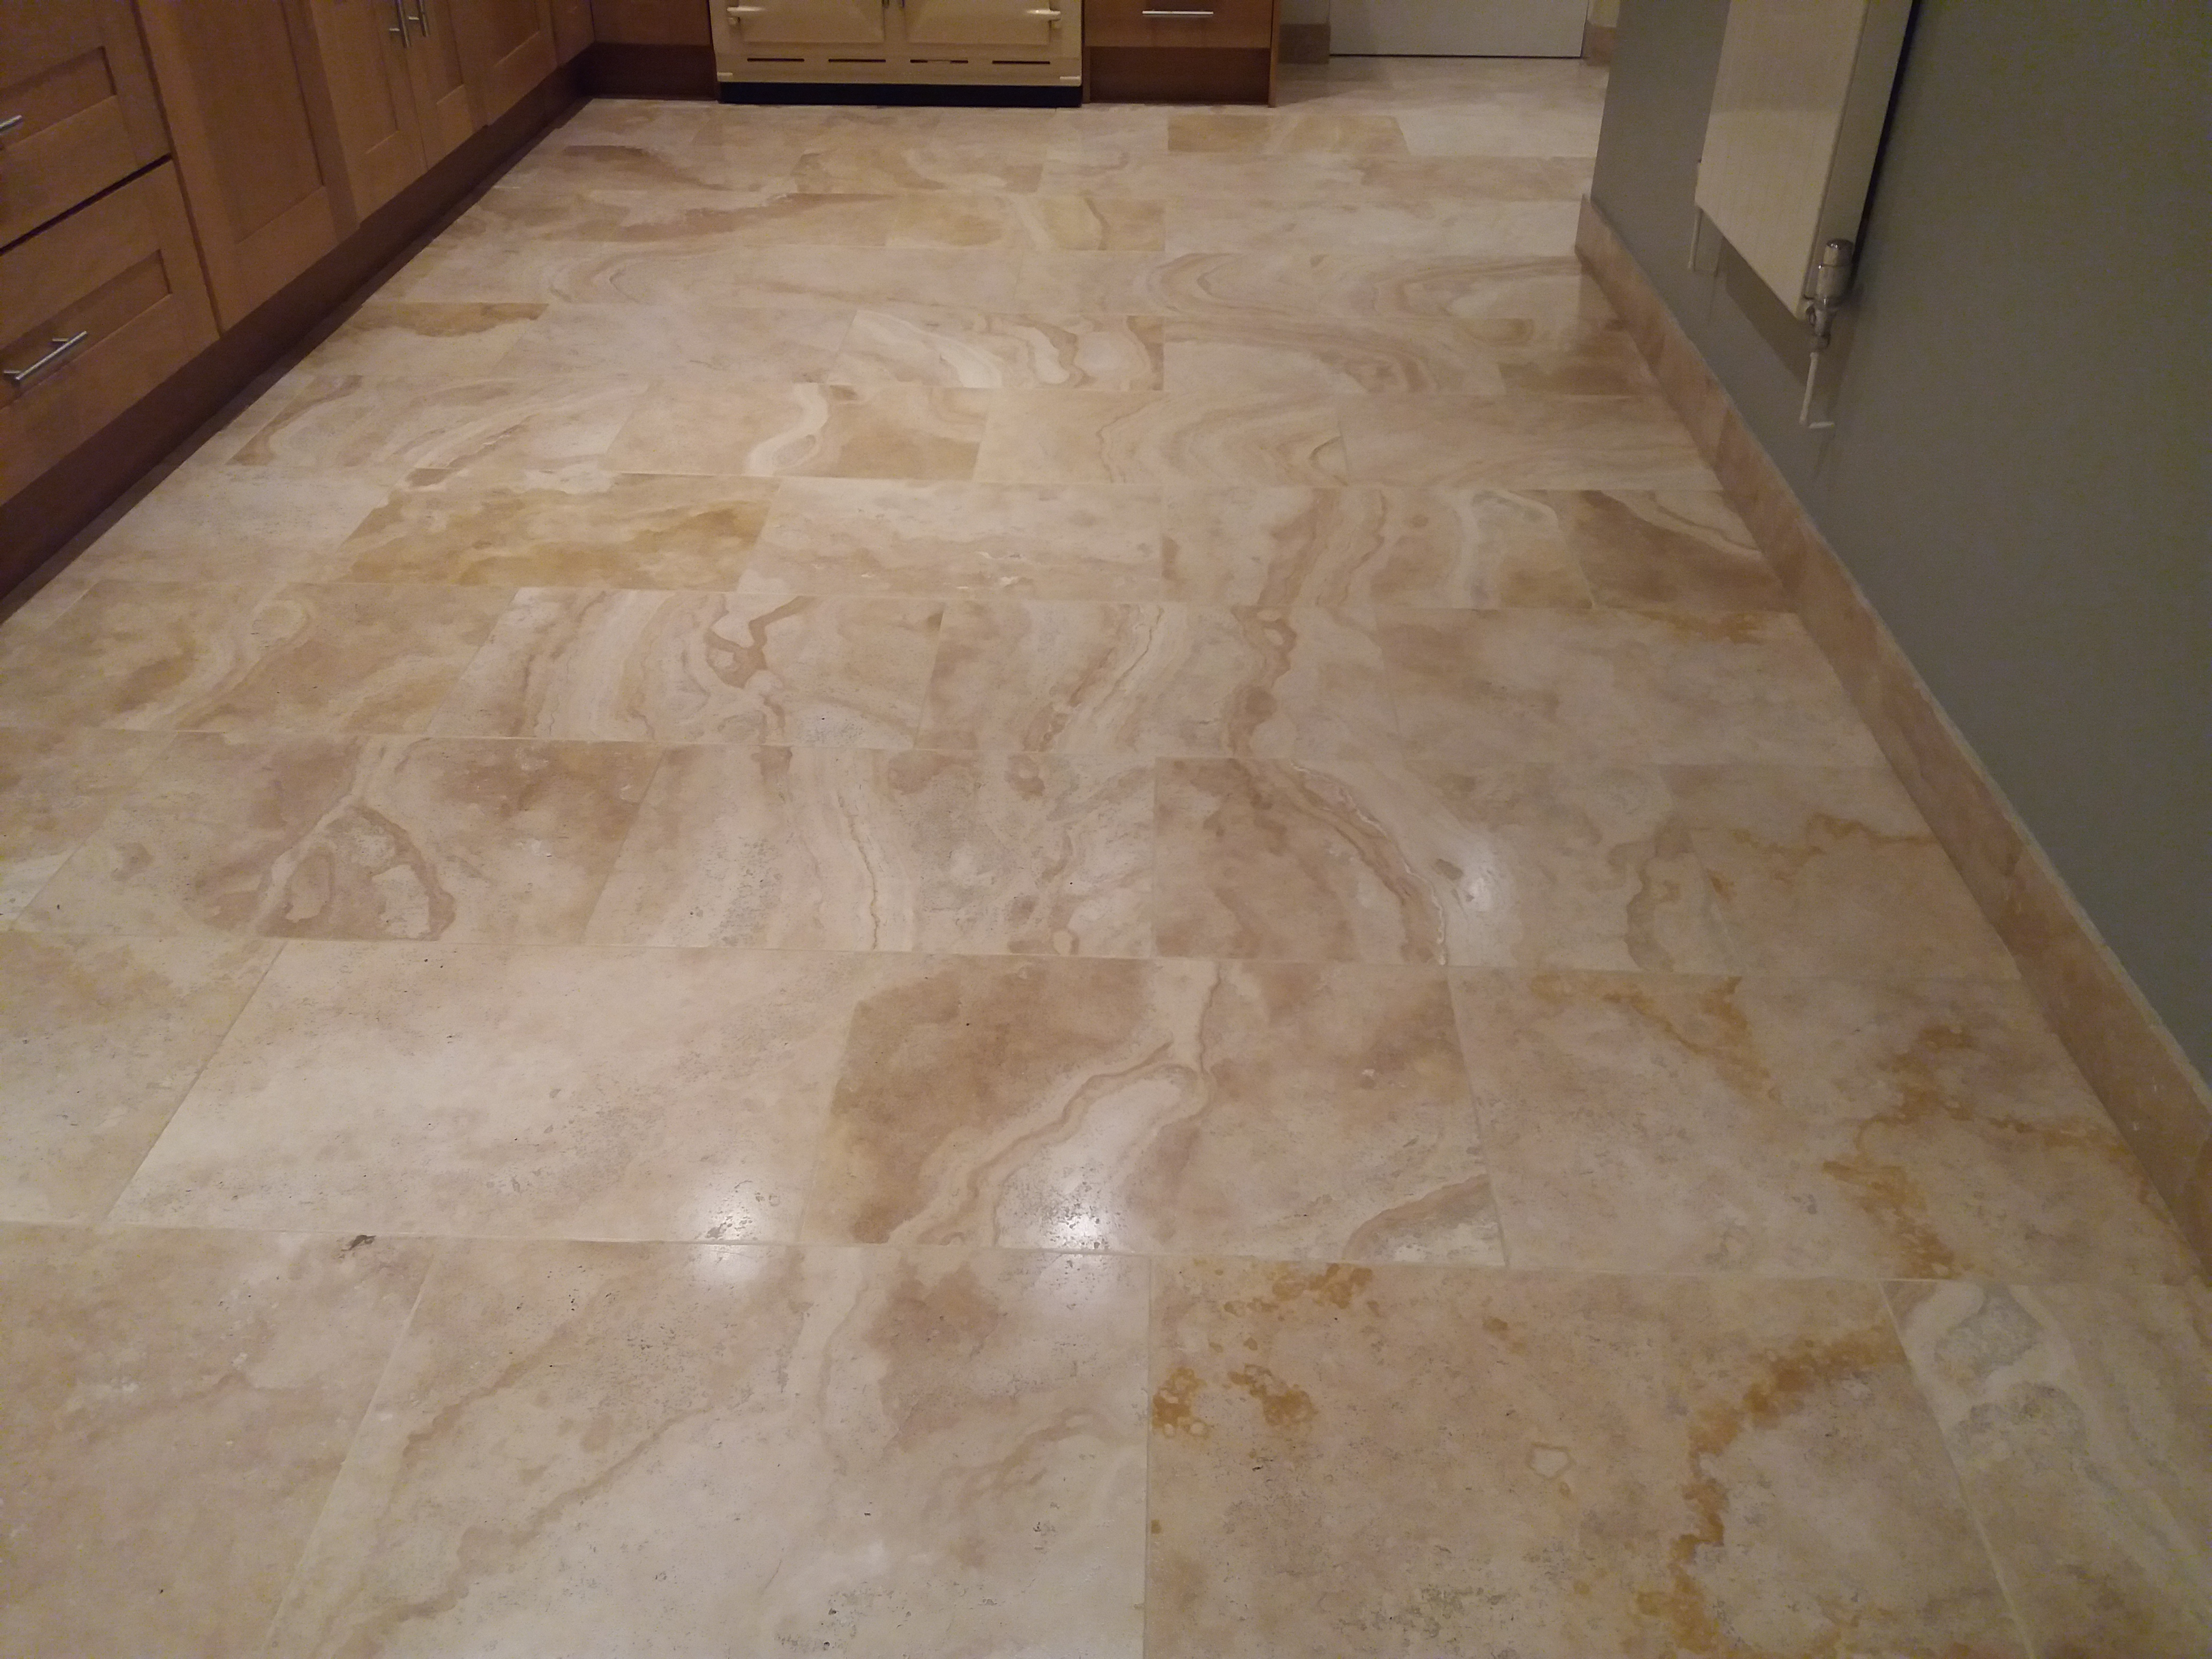 travertine floor cleaning and sealing oxfordshire floor. Black Bedroom Furniture Sets. Home Design Ideas